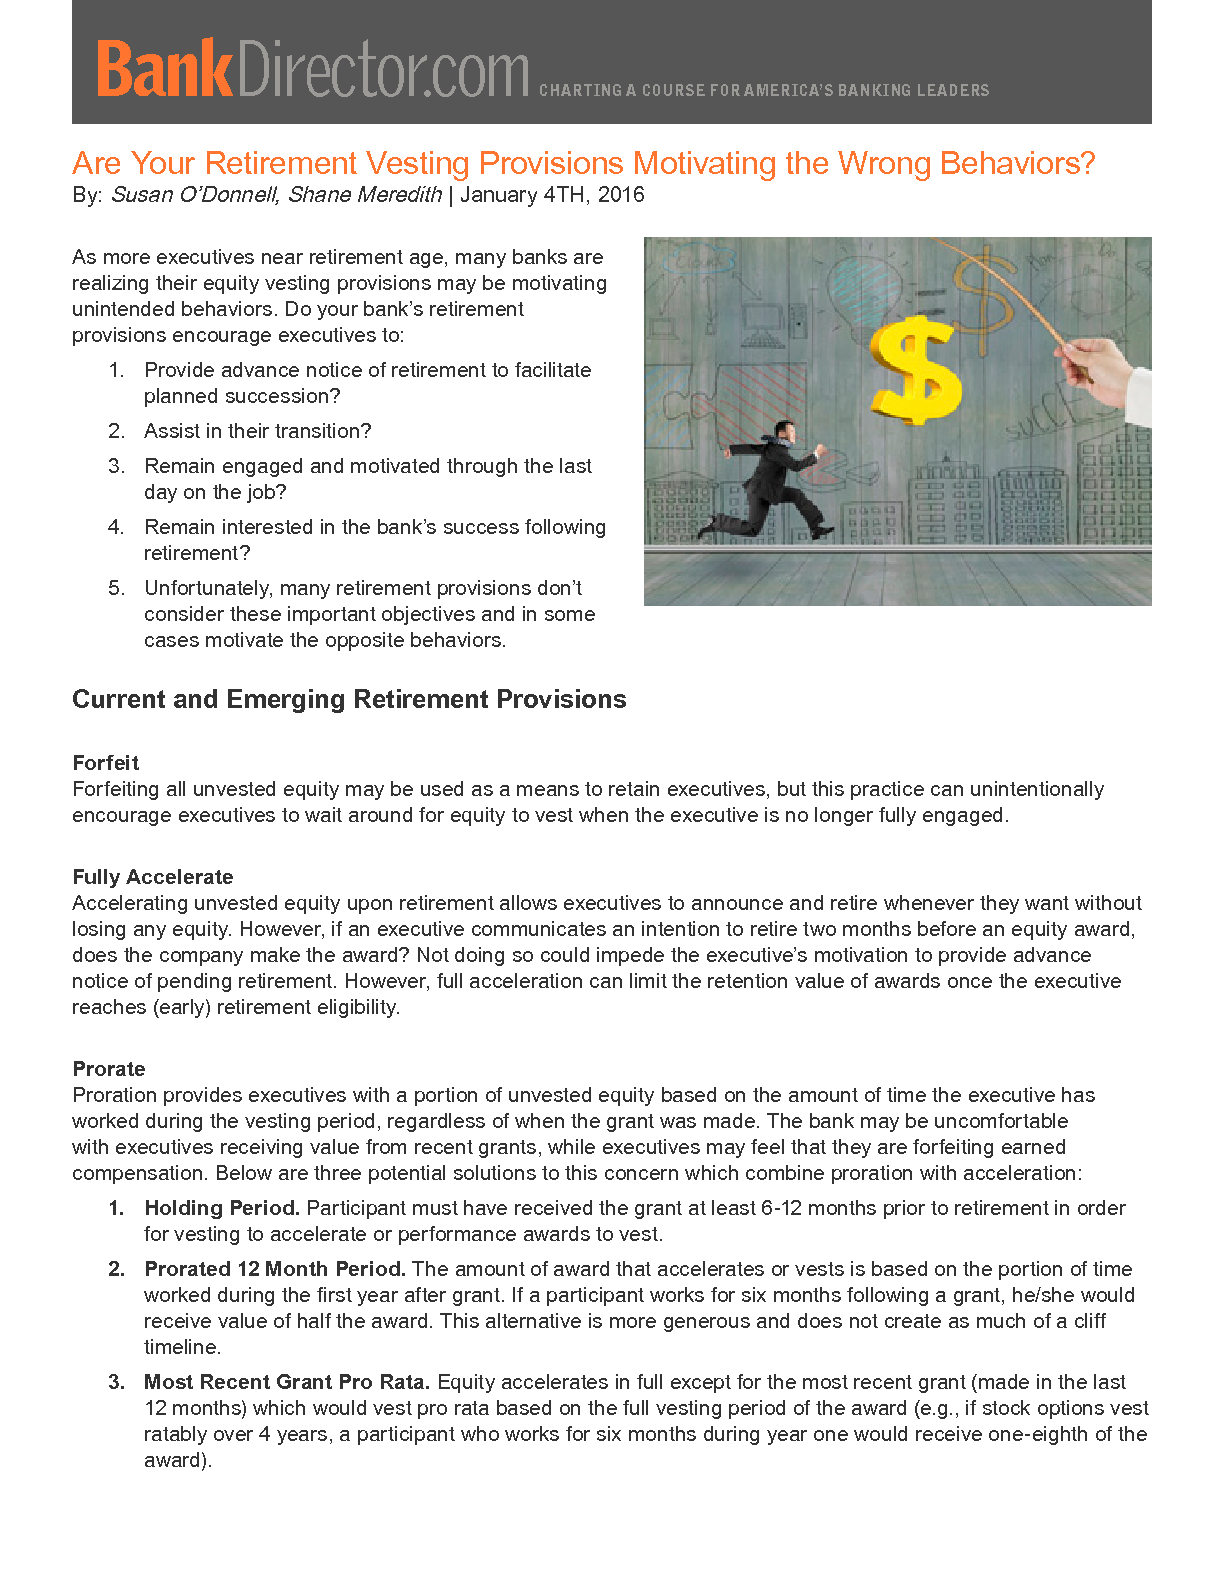 Are Your Retirement Vesting Provisions Motivating the Wrong Behaviors? (PDF)